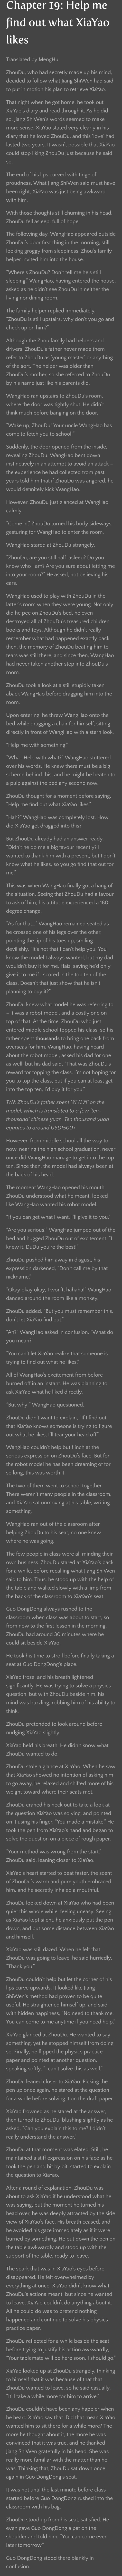 MW(R) Chapter 19